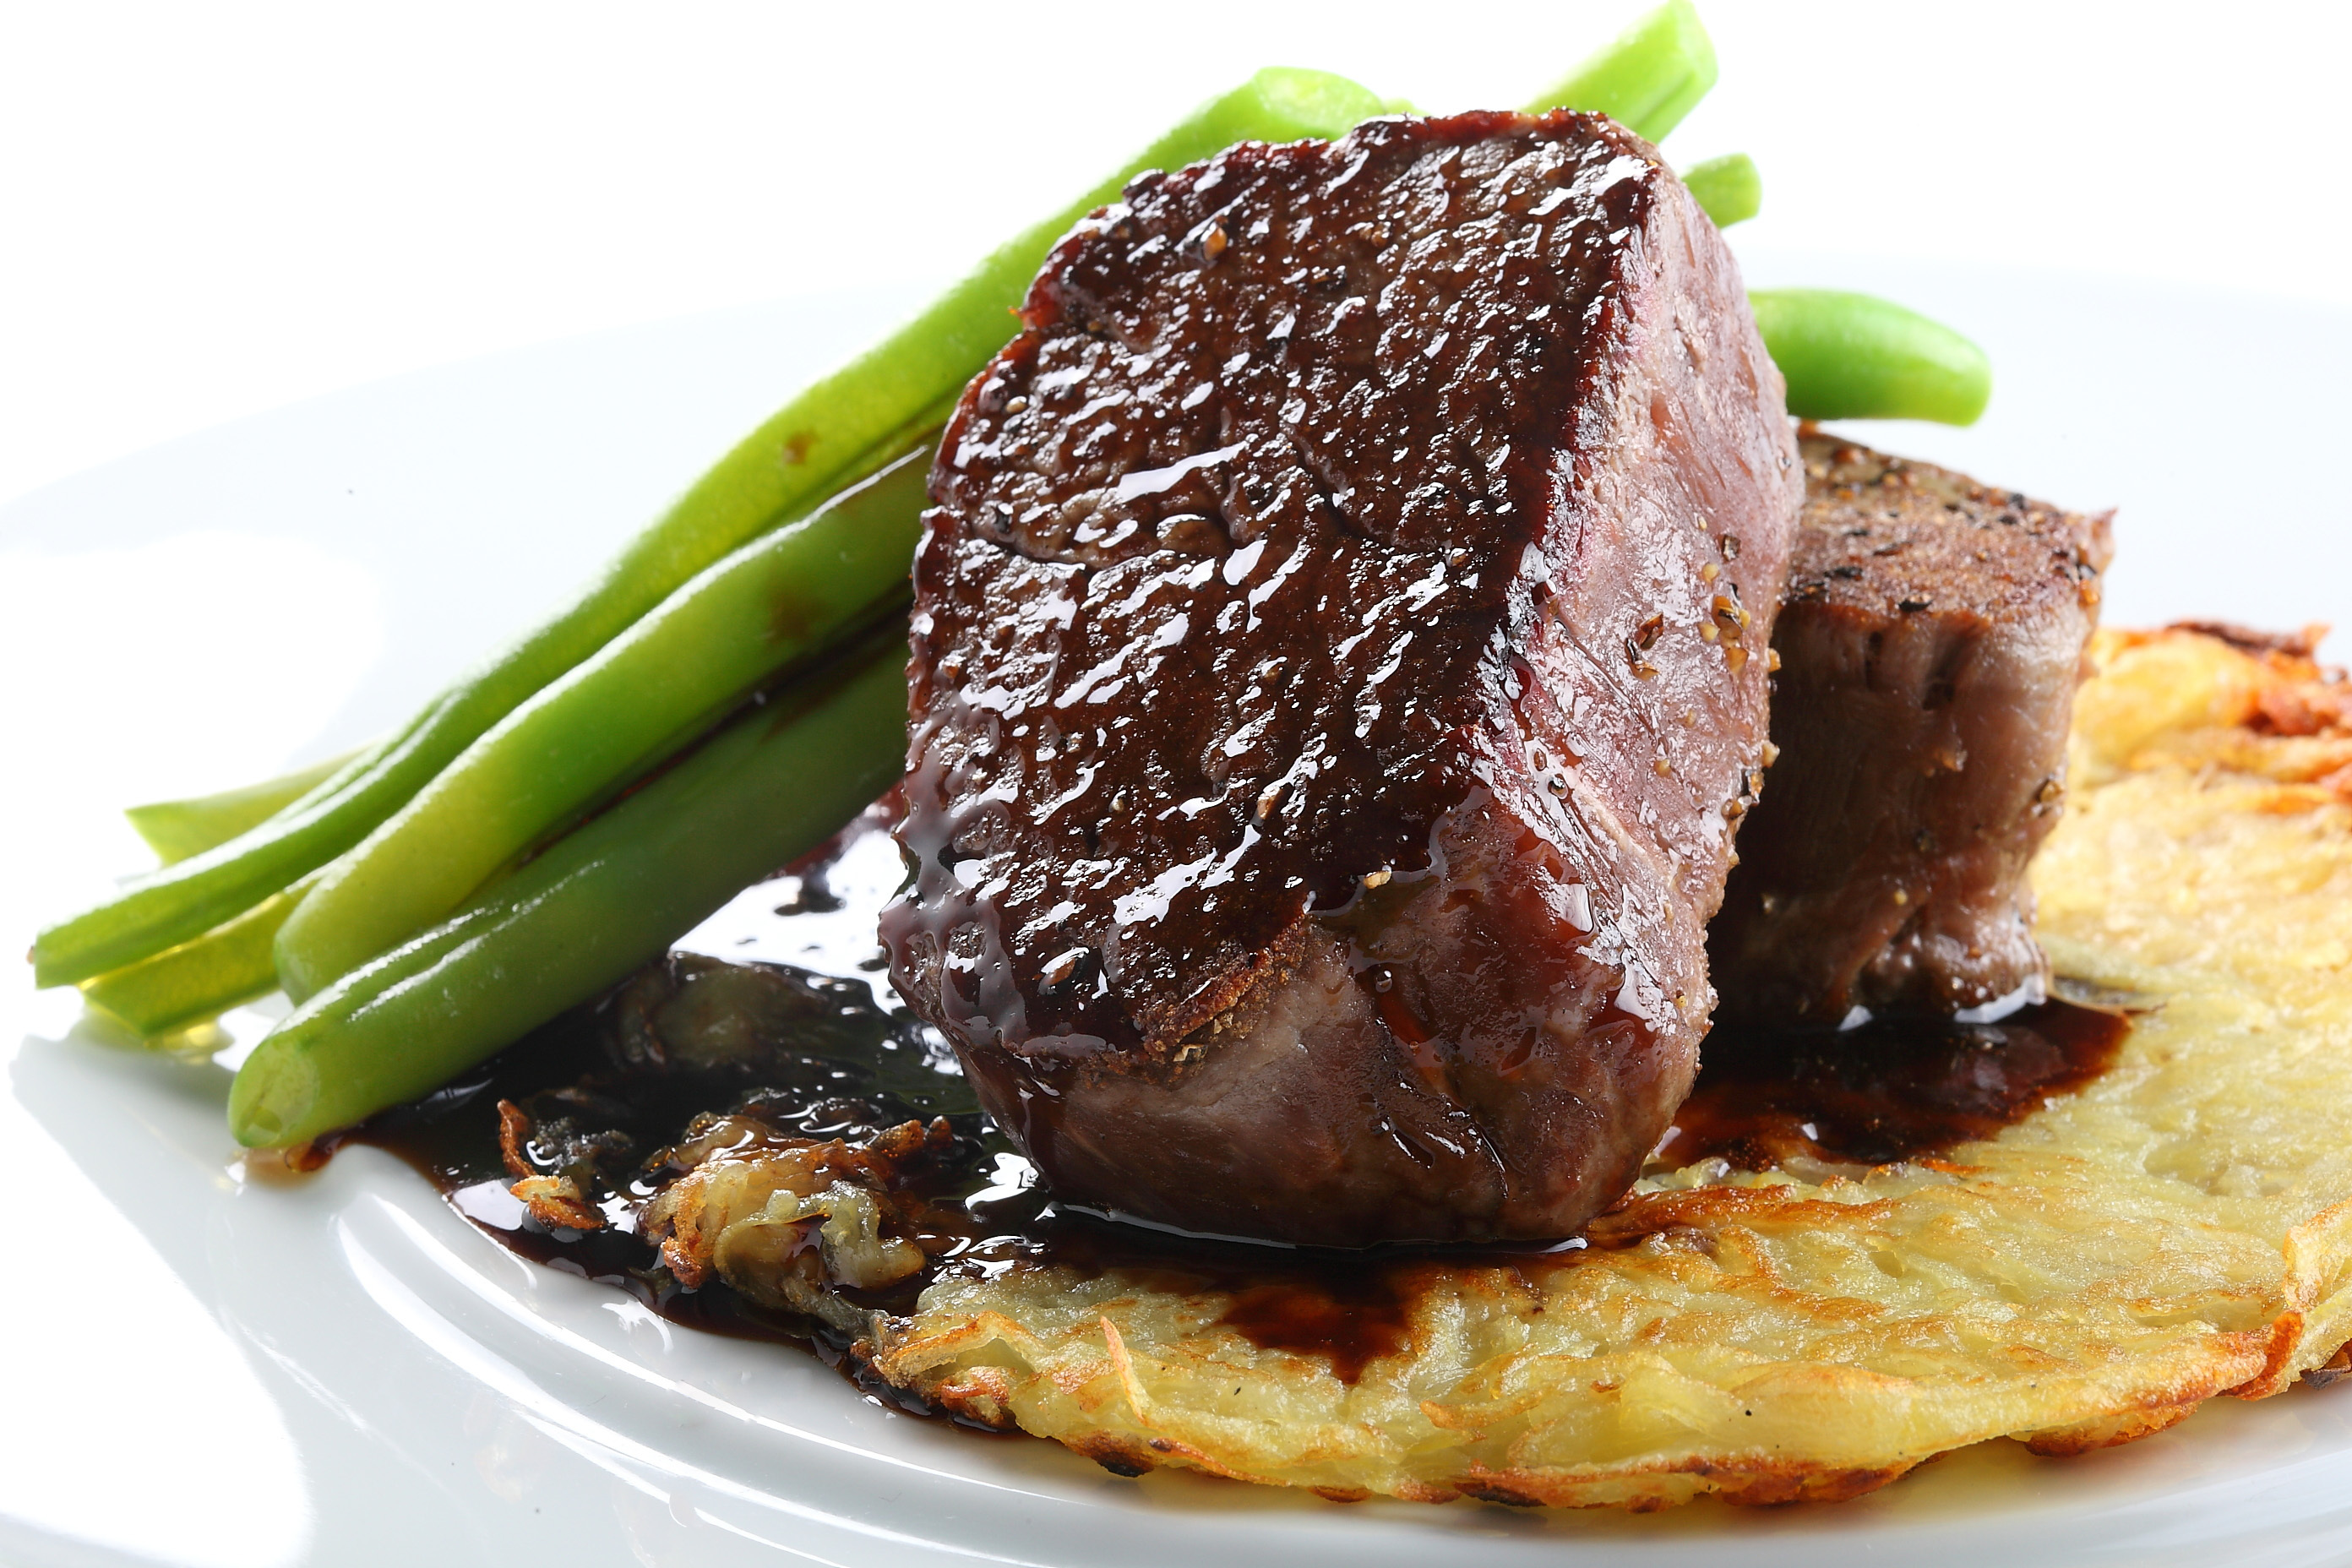 Steak over potatoes and asparagus